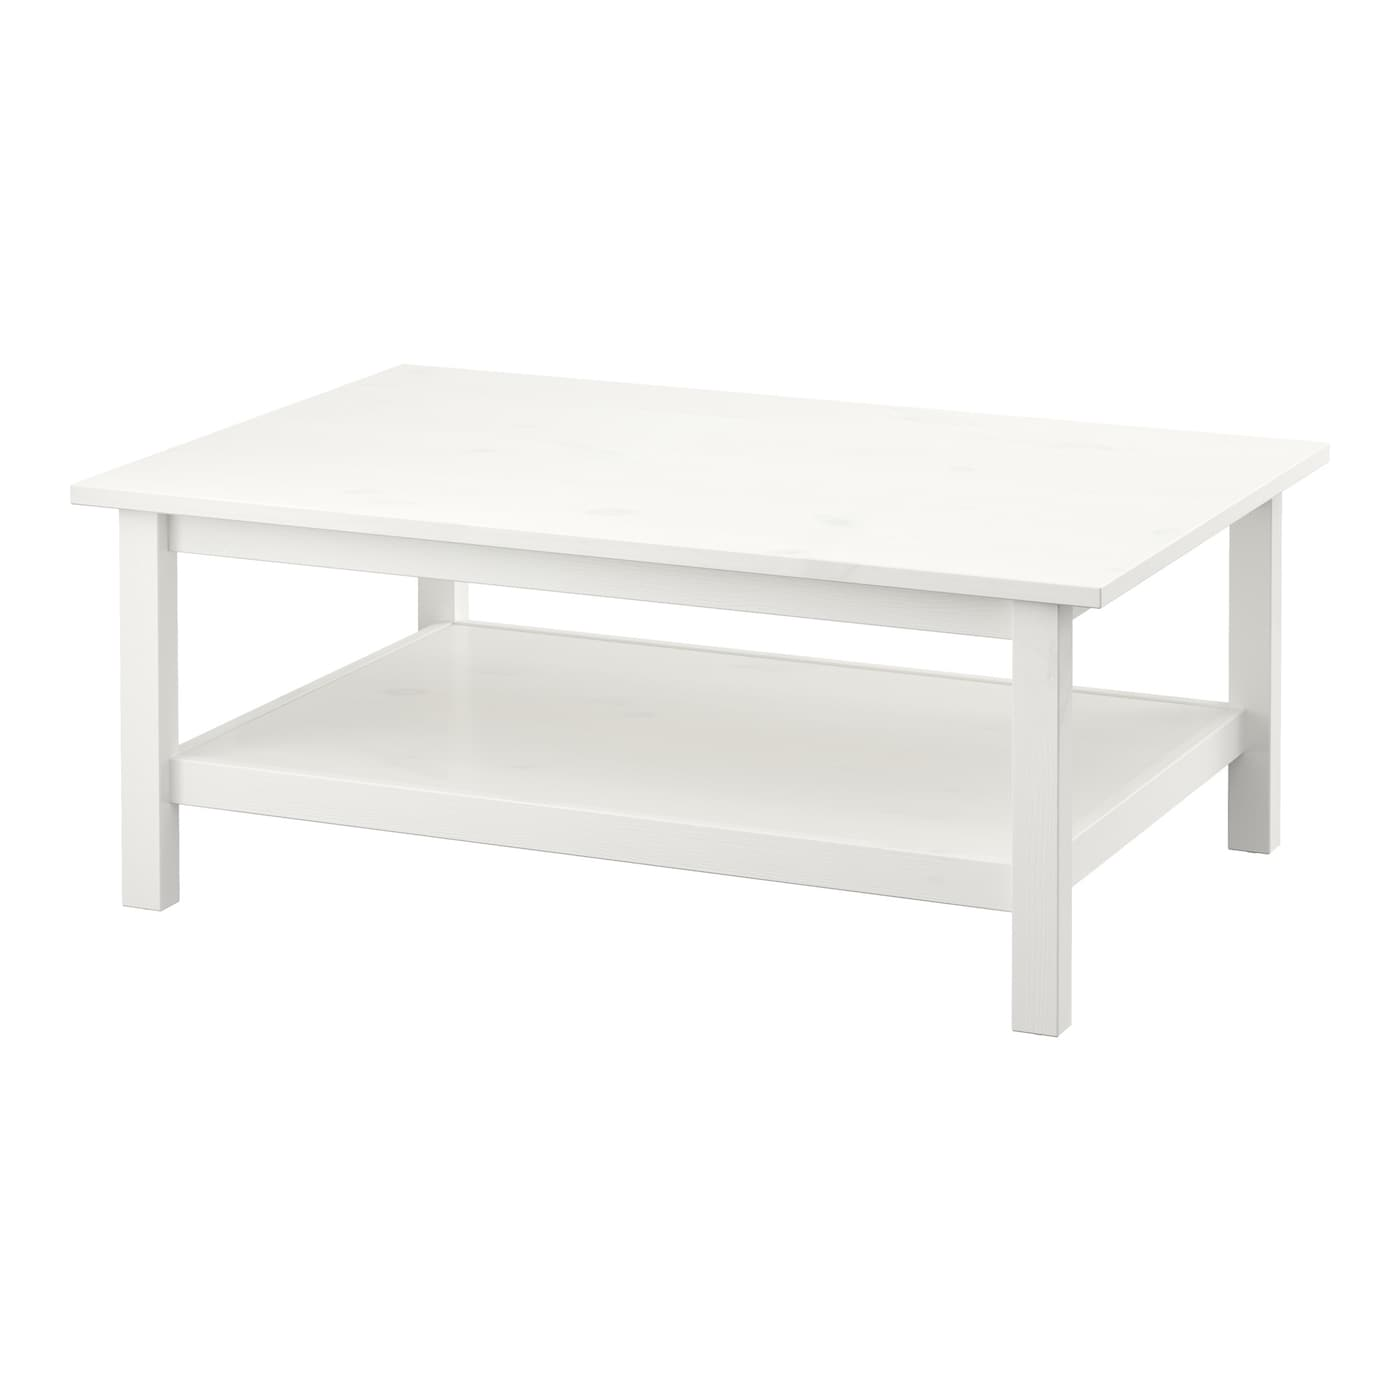 hemnes coffee table white stain 118 x 75 cm ikea. Black Bedroom Furniture Sets. Home Design Ideas